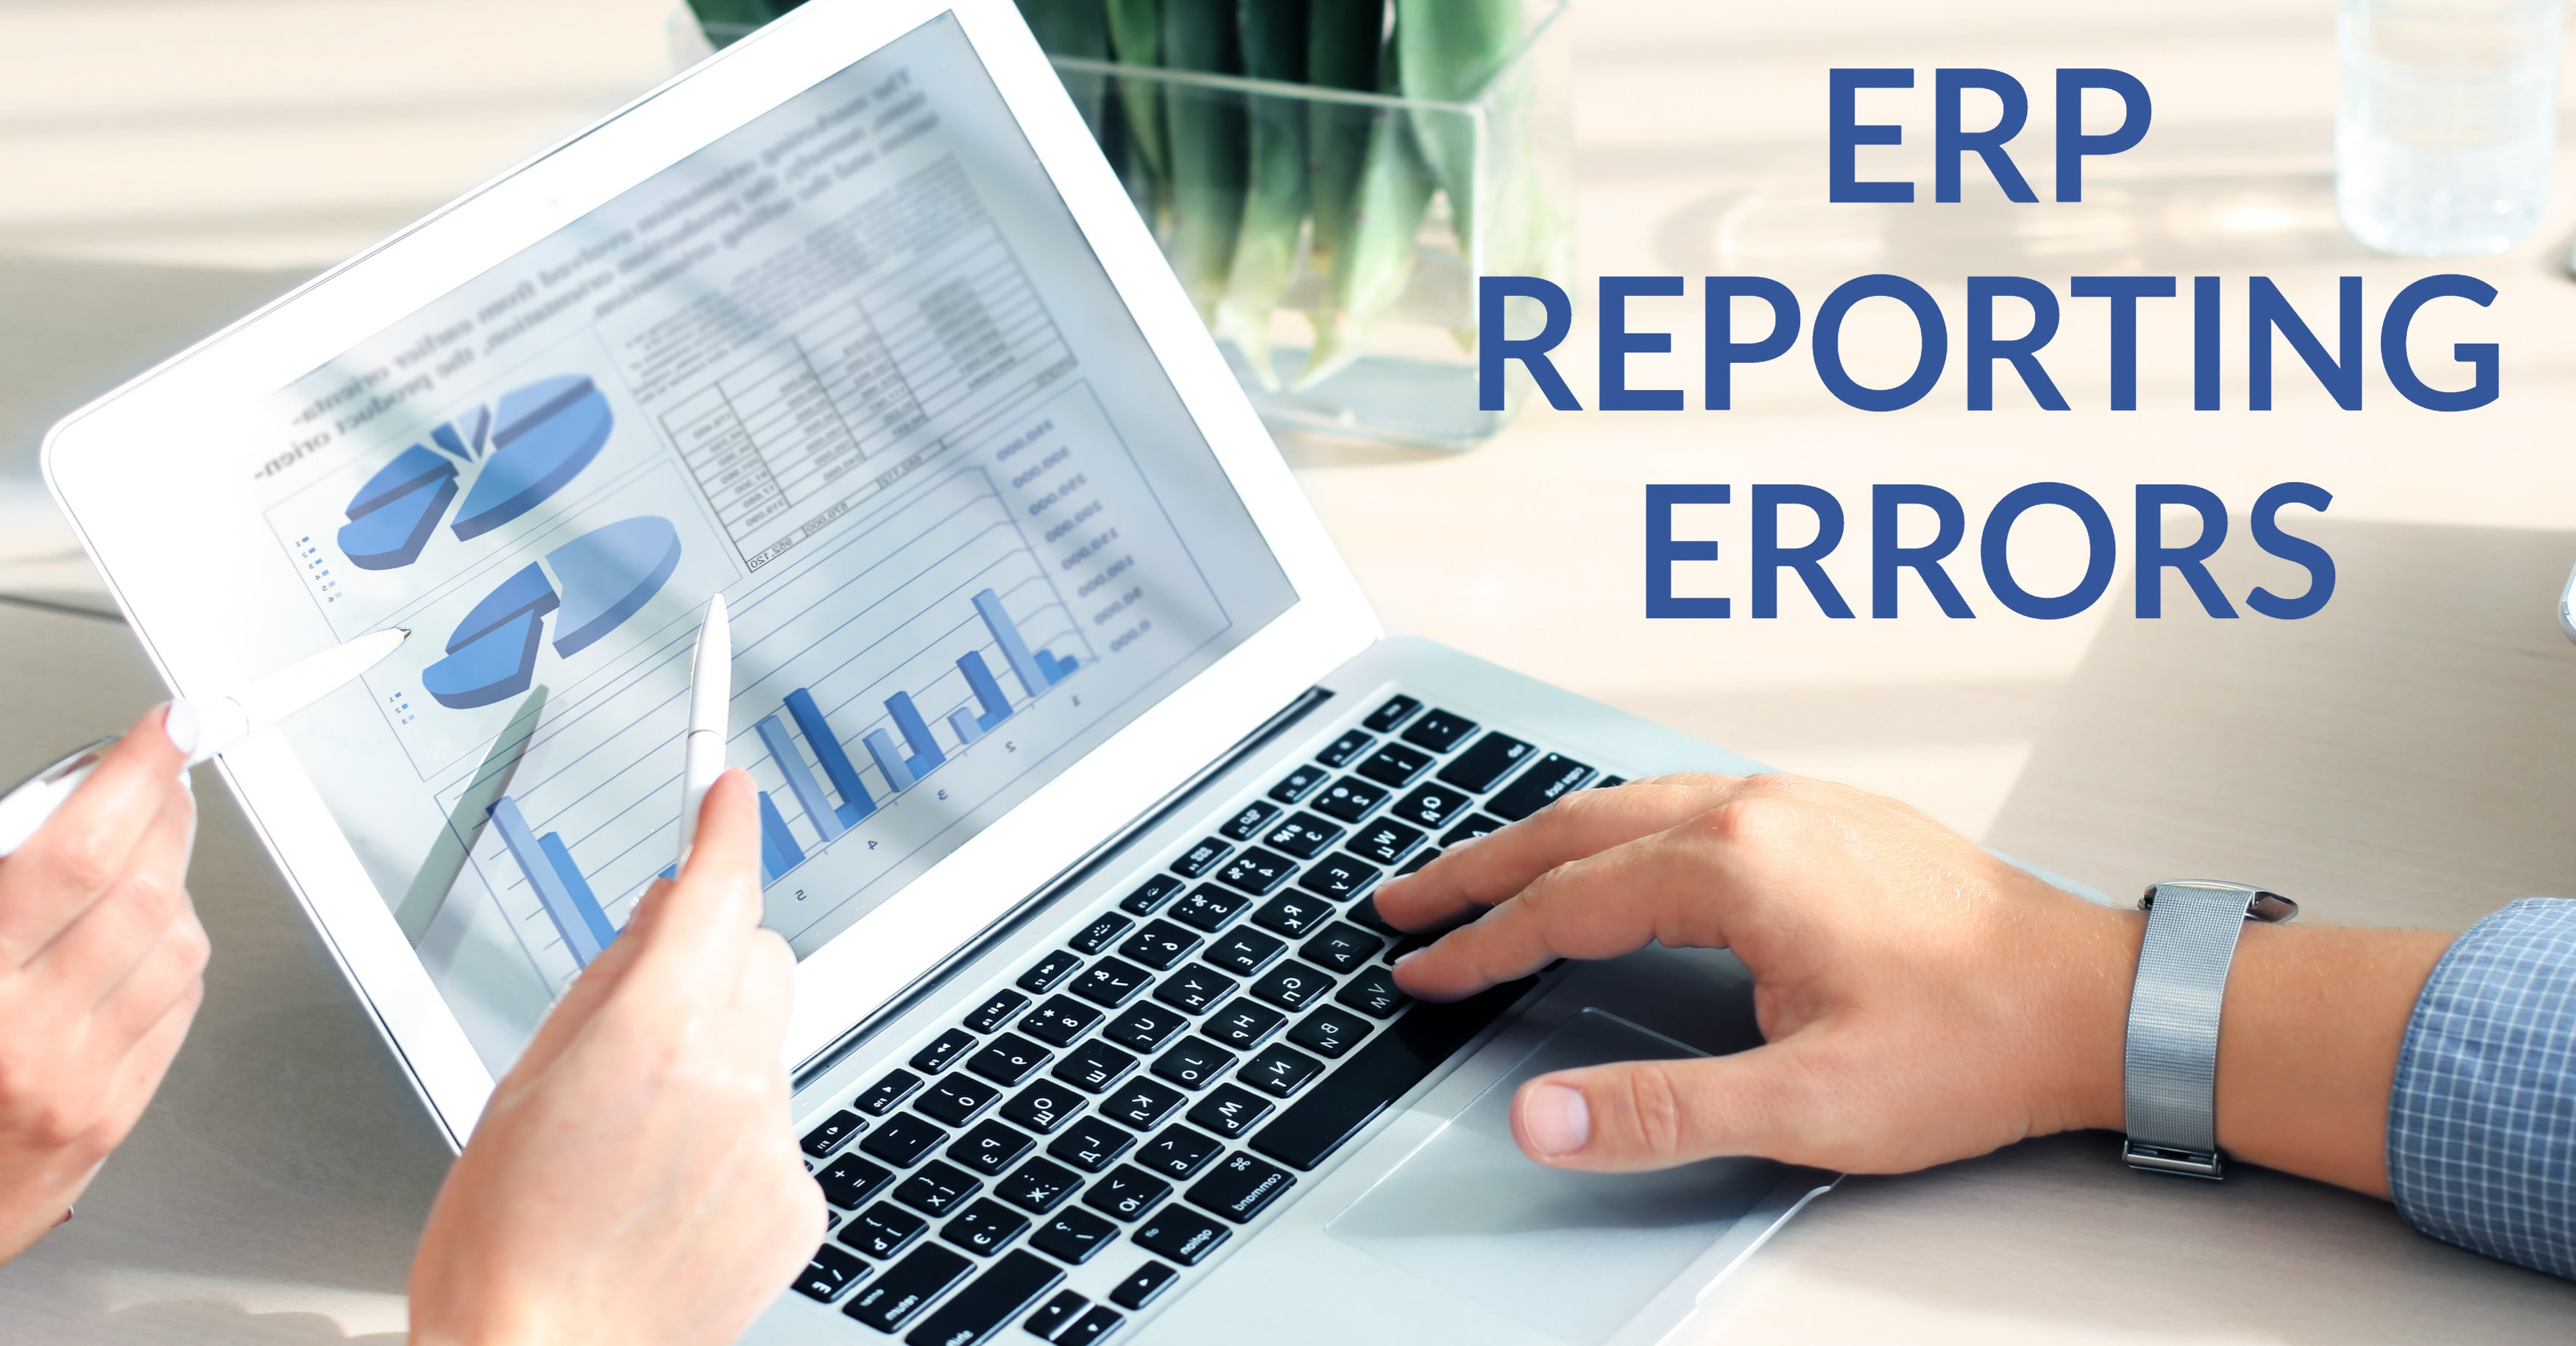 Most Common ERP Reporting Errors